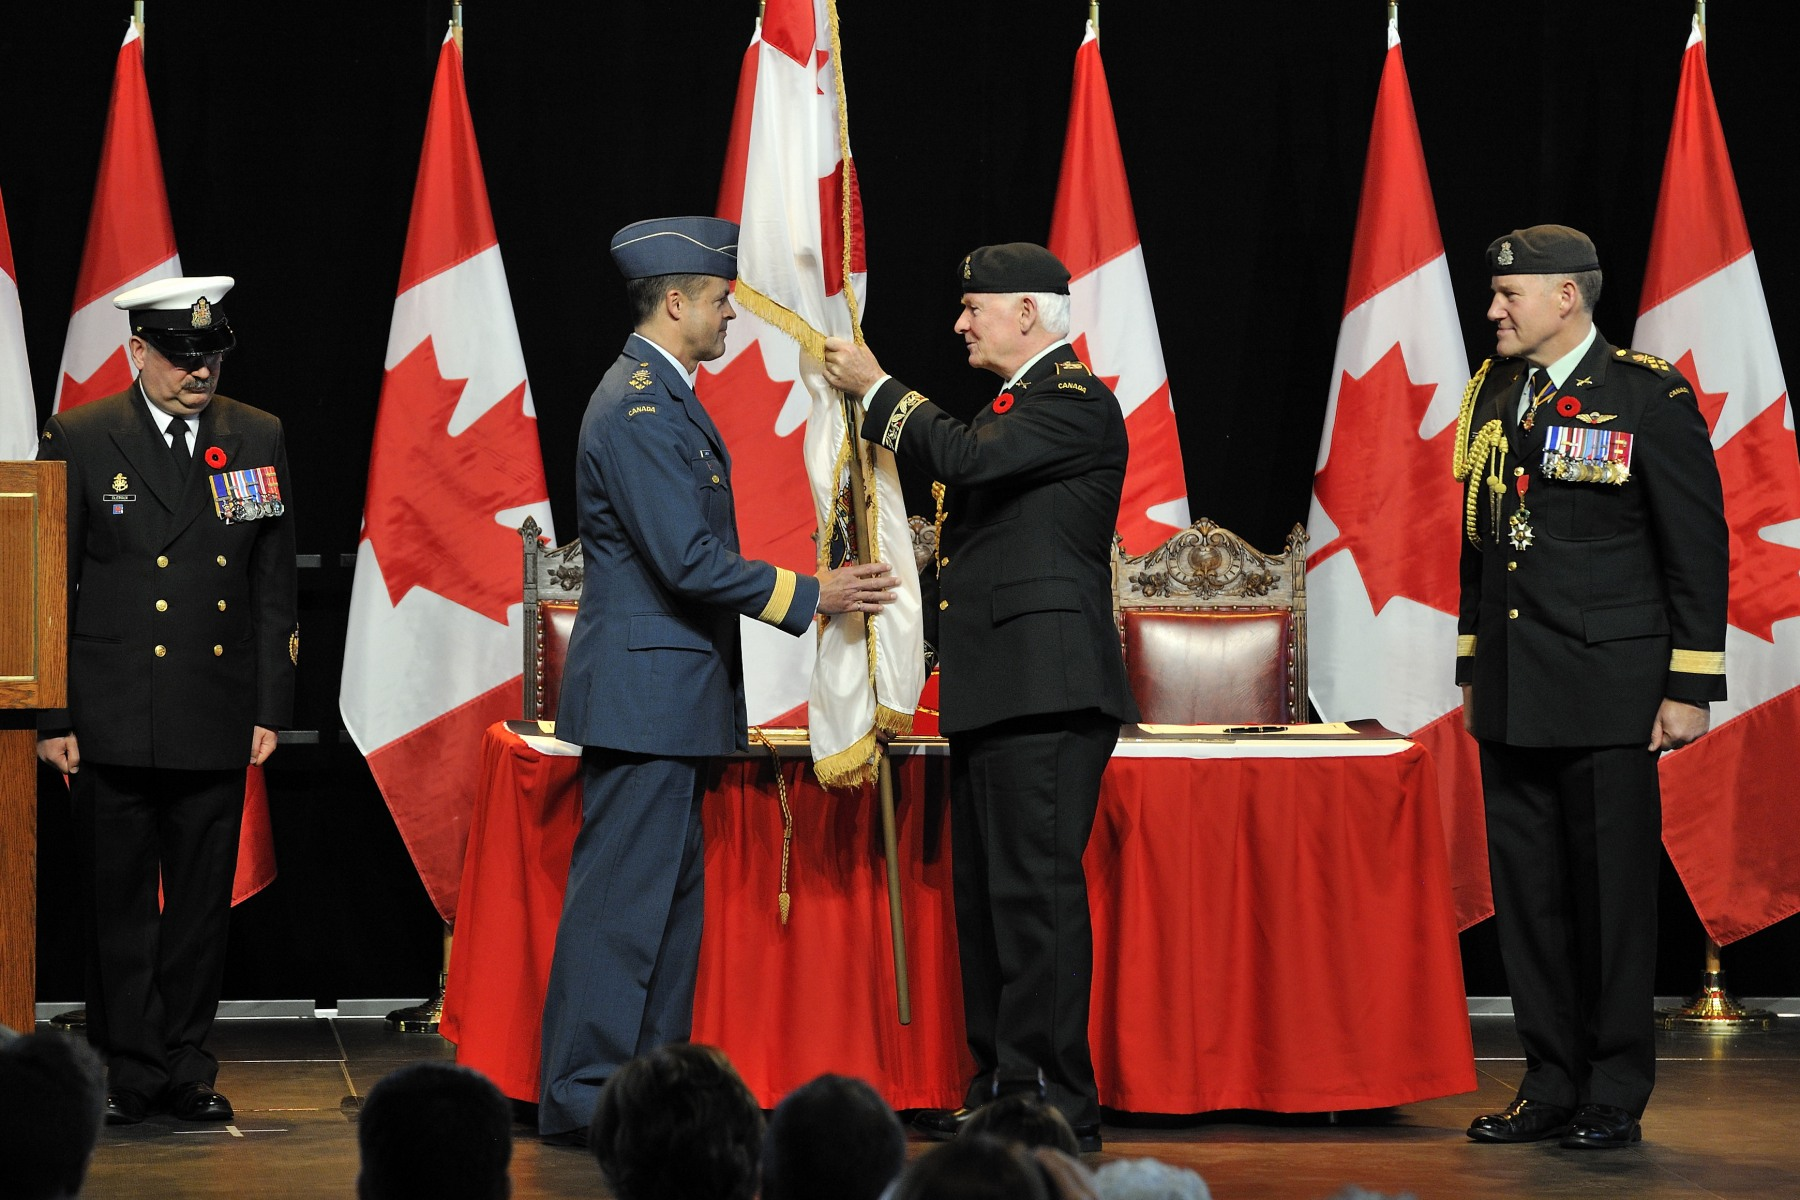 General Natynczyk transferred the Canadian Forces ensign to the Governor General, who then presented it to General Lawson.